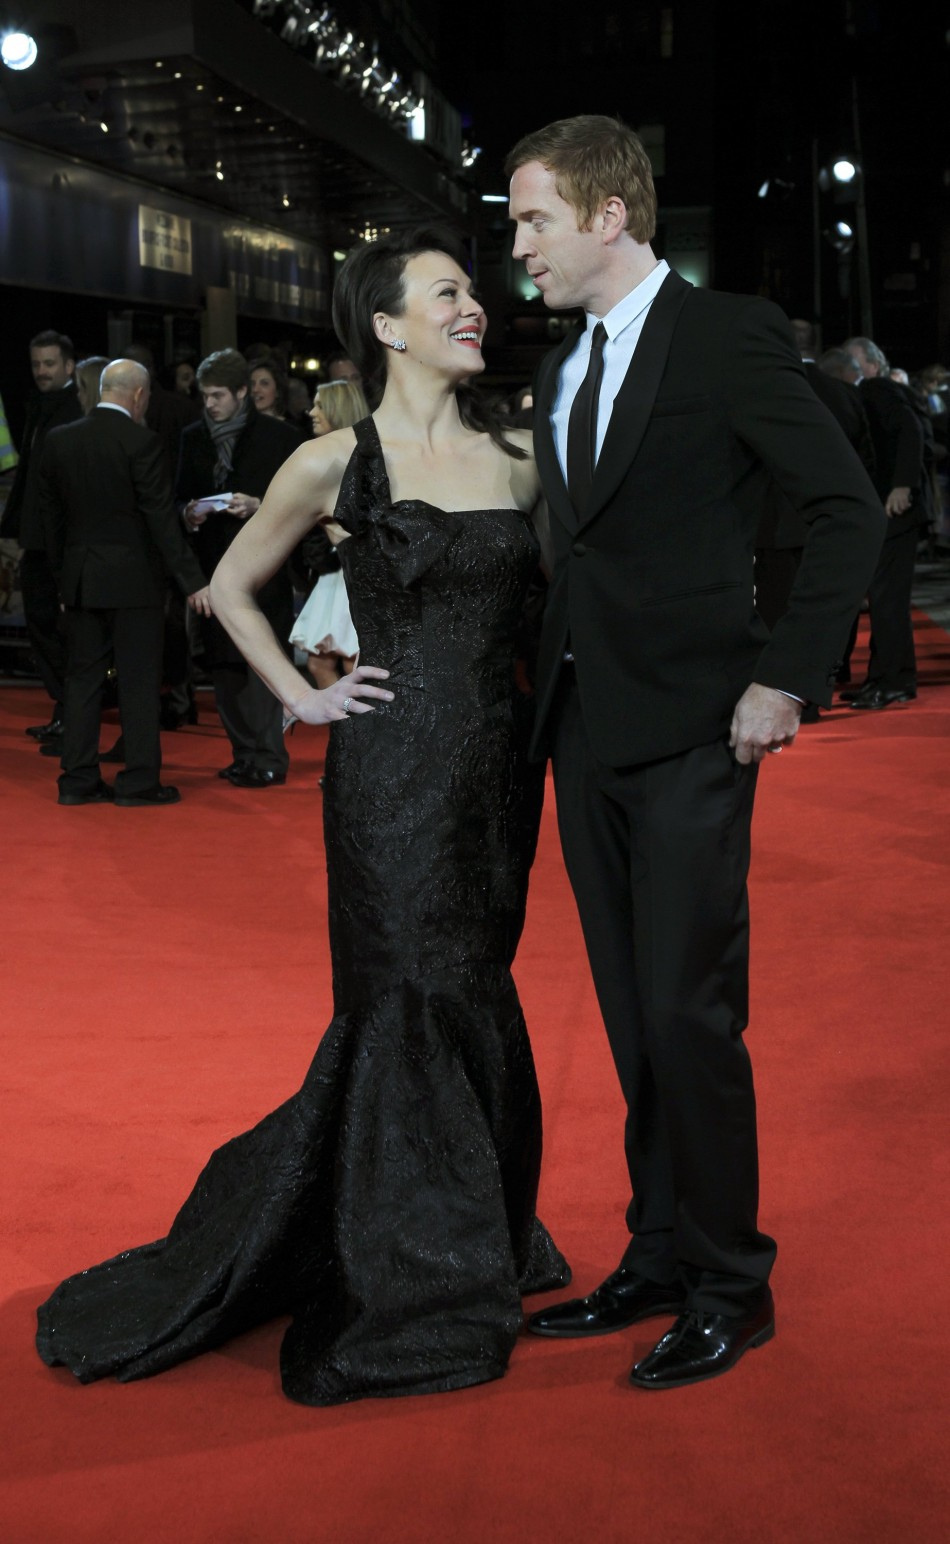 Actors Helen McCrory and Damien Lewis arrive at The Royal Premiere of director Martin Scorseses film Hugo at the Odeon Leicester Square cinema in London